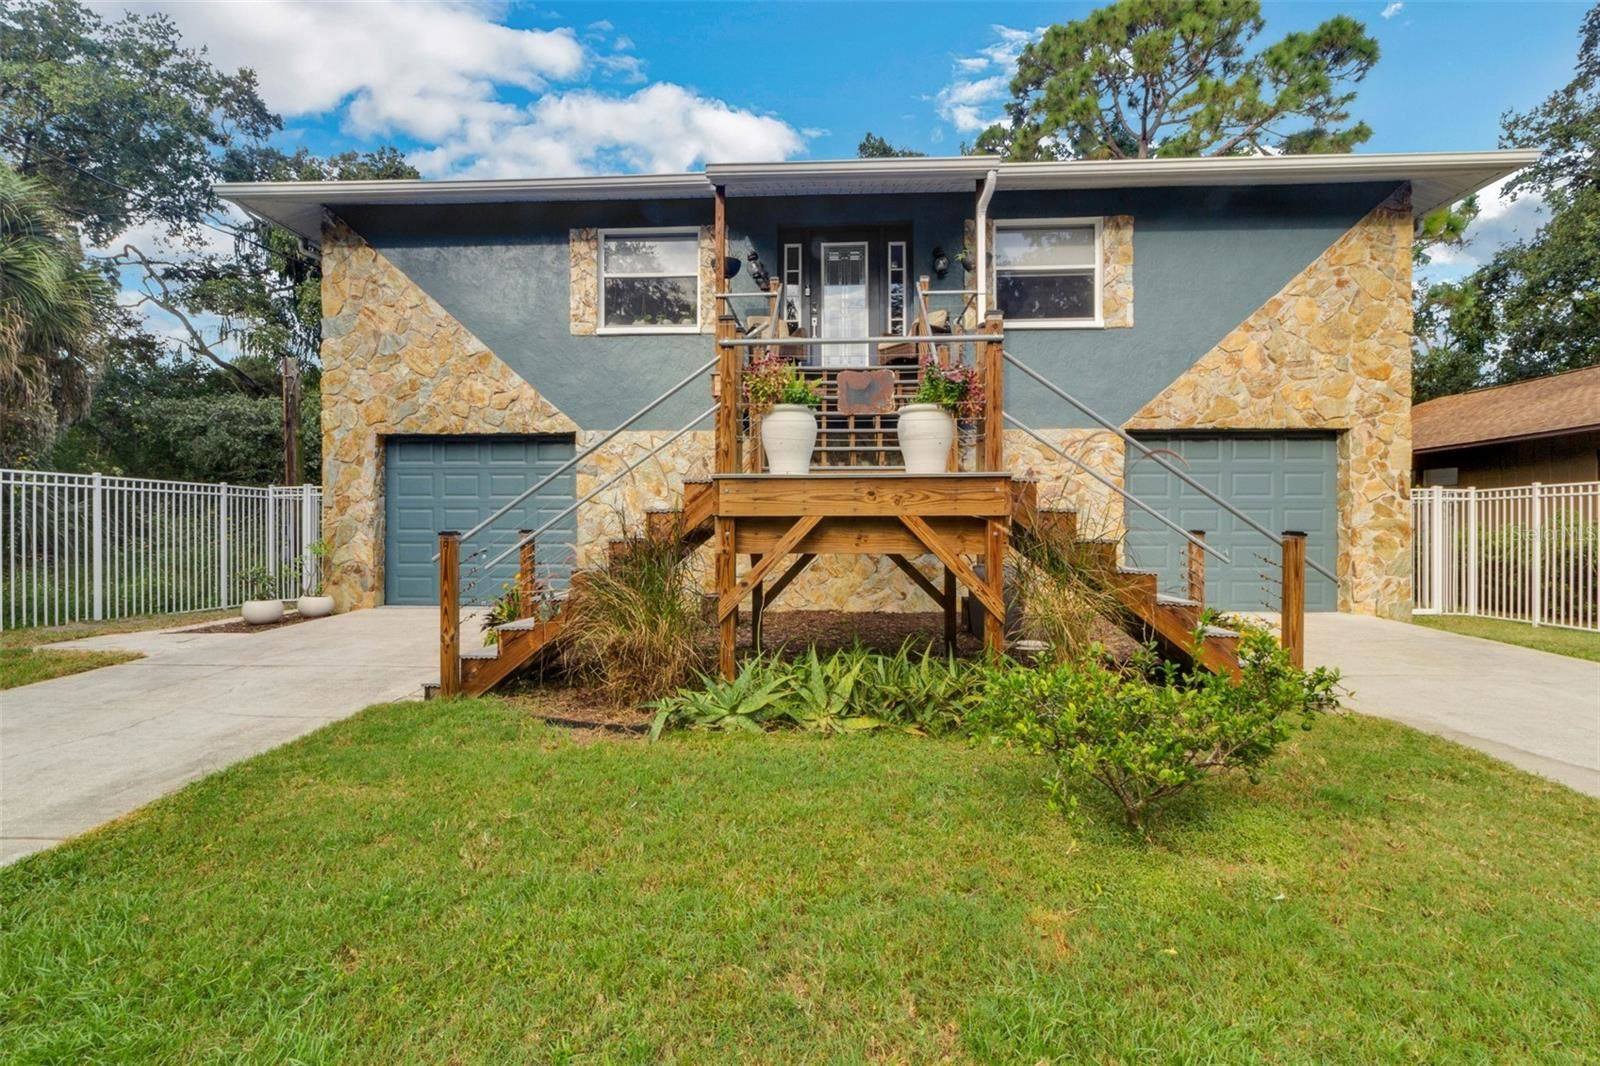 Photo for 7418 BAY DRIVE, TAMPA, FL 33635 (MLS # T3334781)